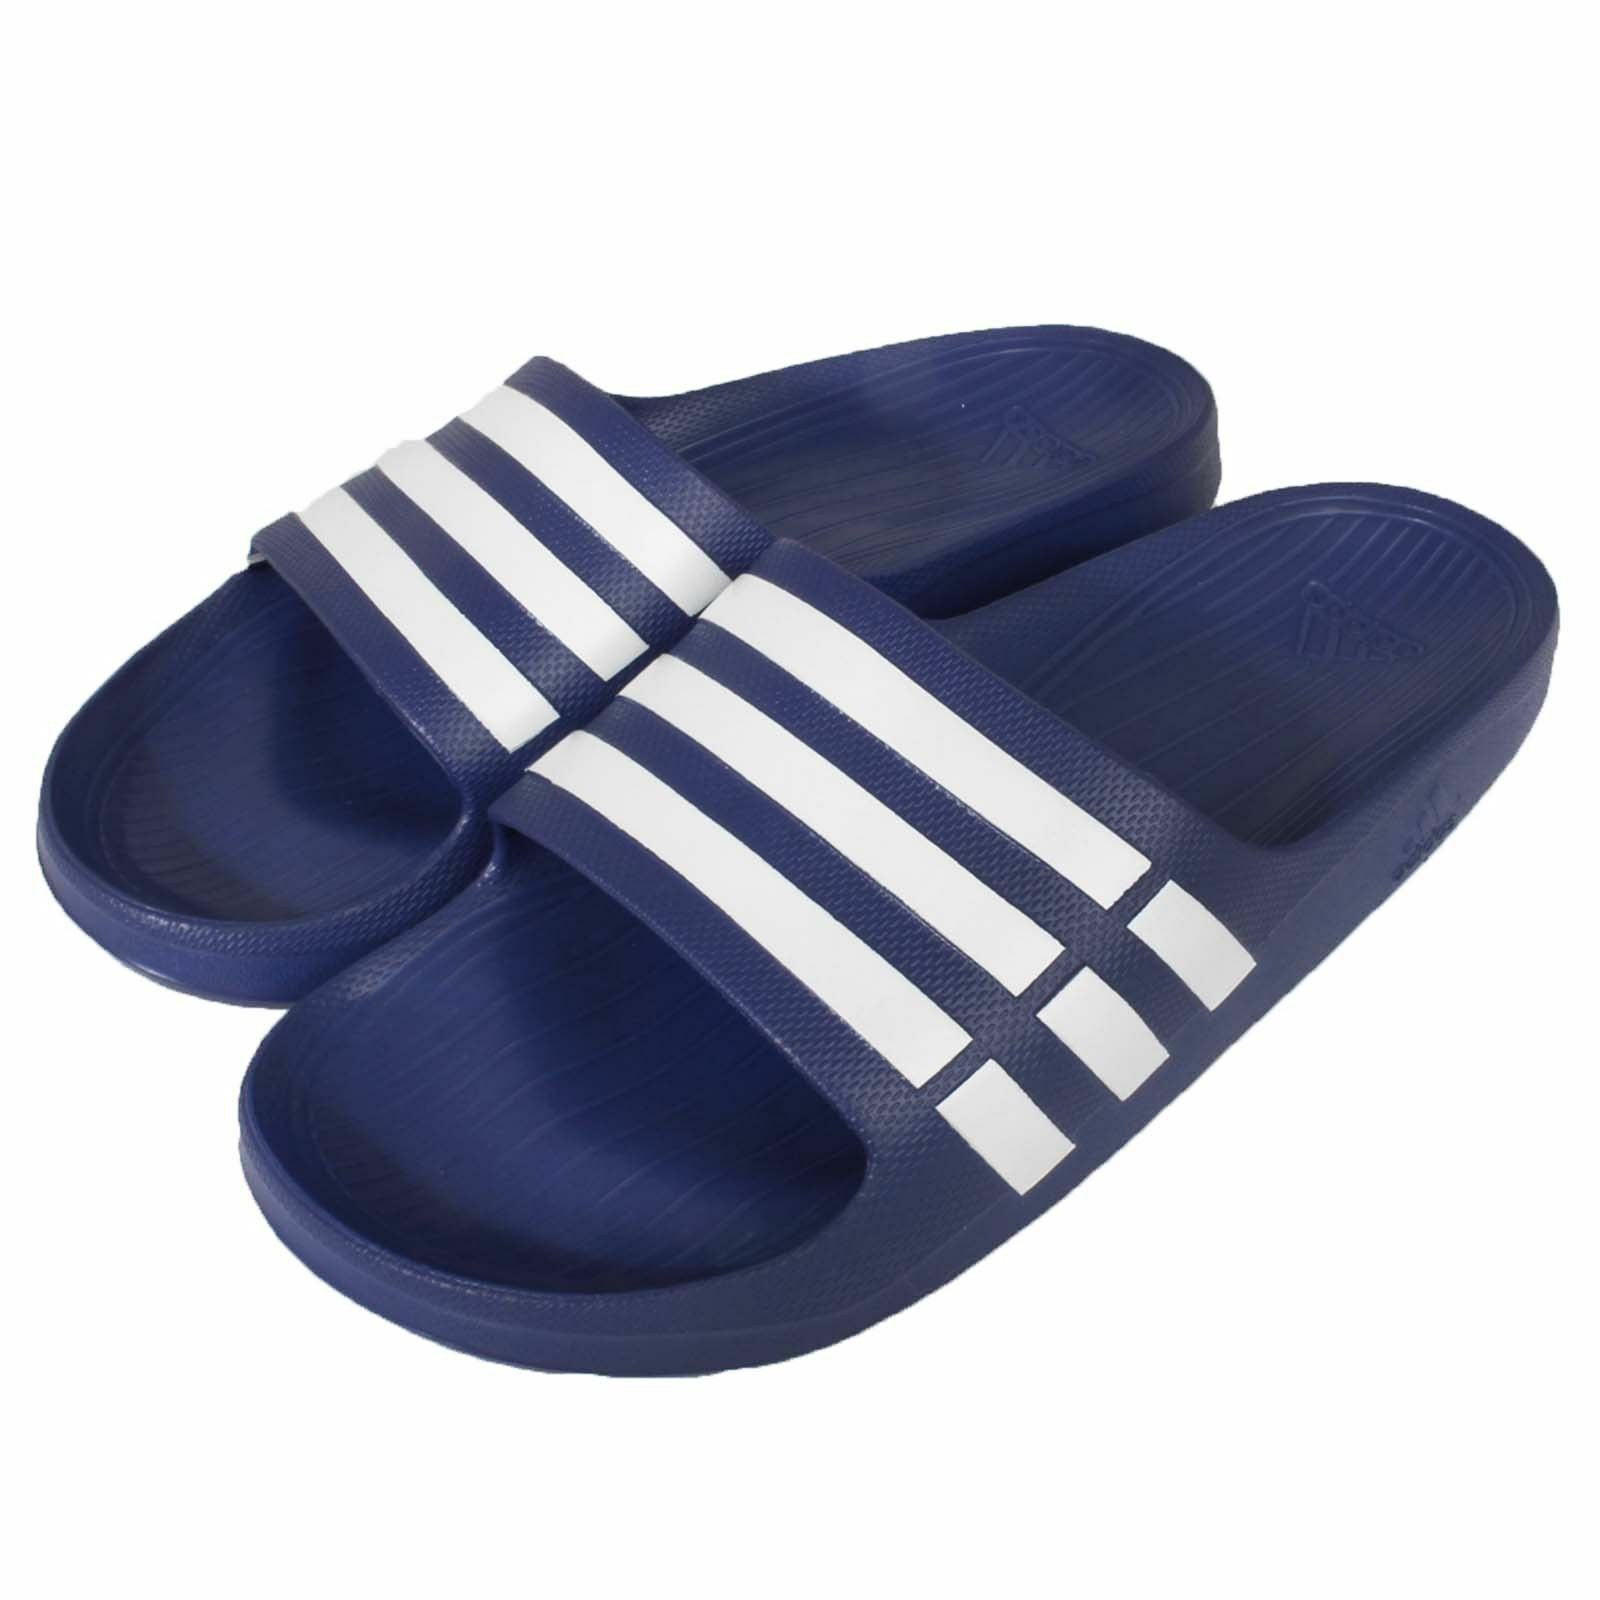 Adidas Duramo Mens Slides Sandals Flip Flops Beach Wear bluee Size US 10 NEW